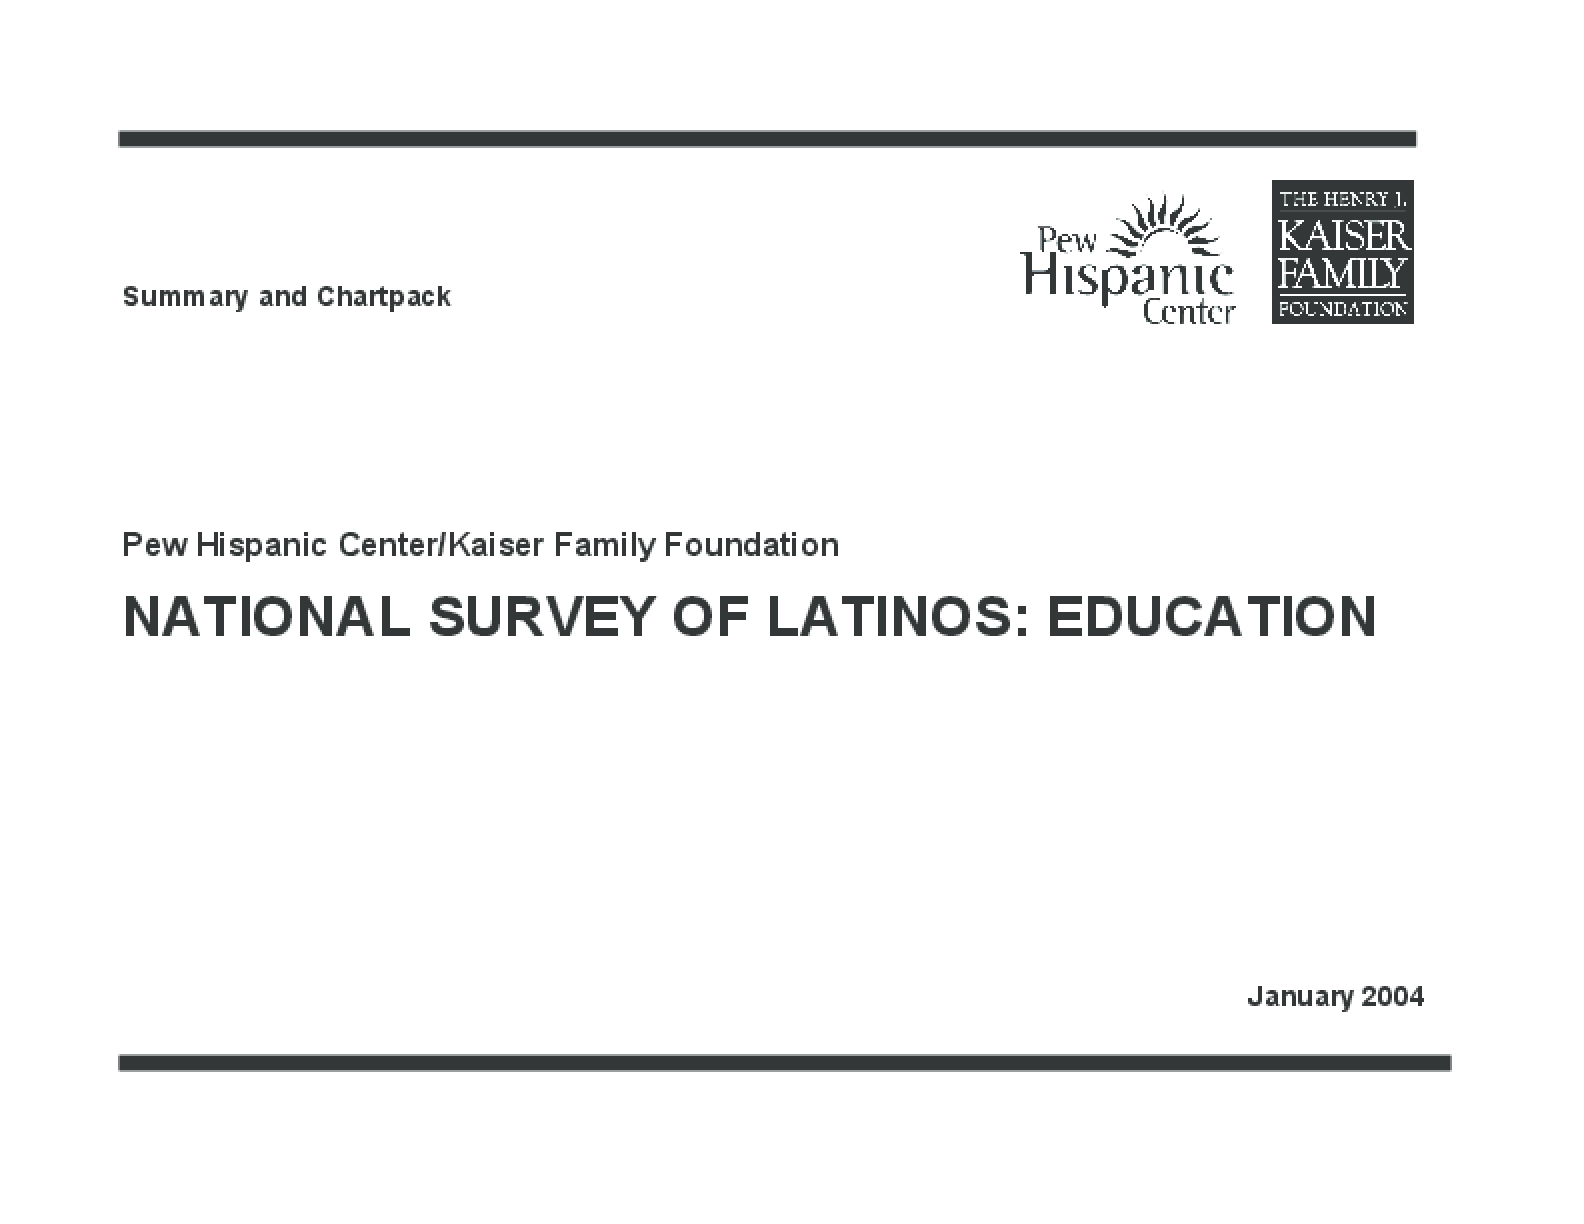 2004 National Survey of Latinos: Education